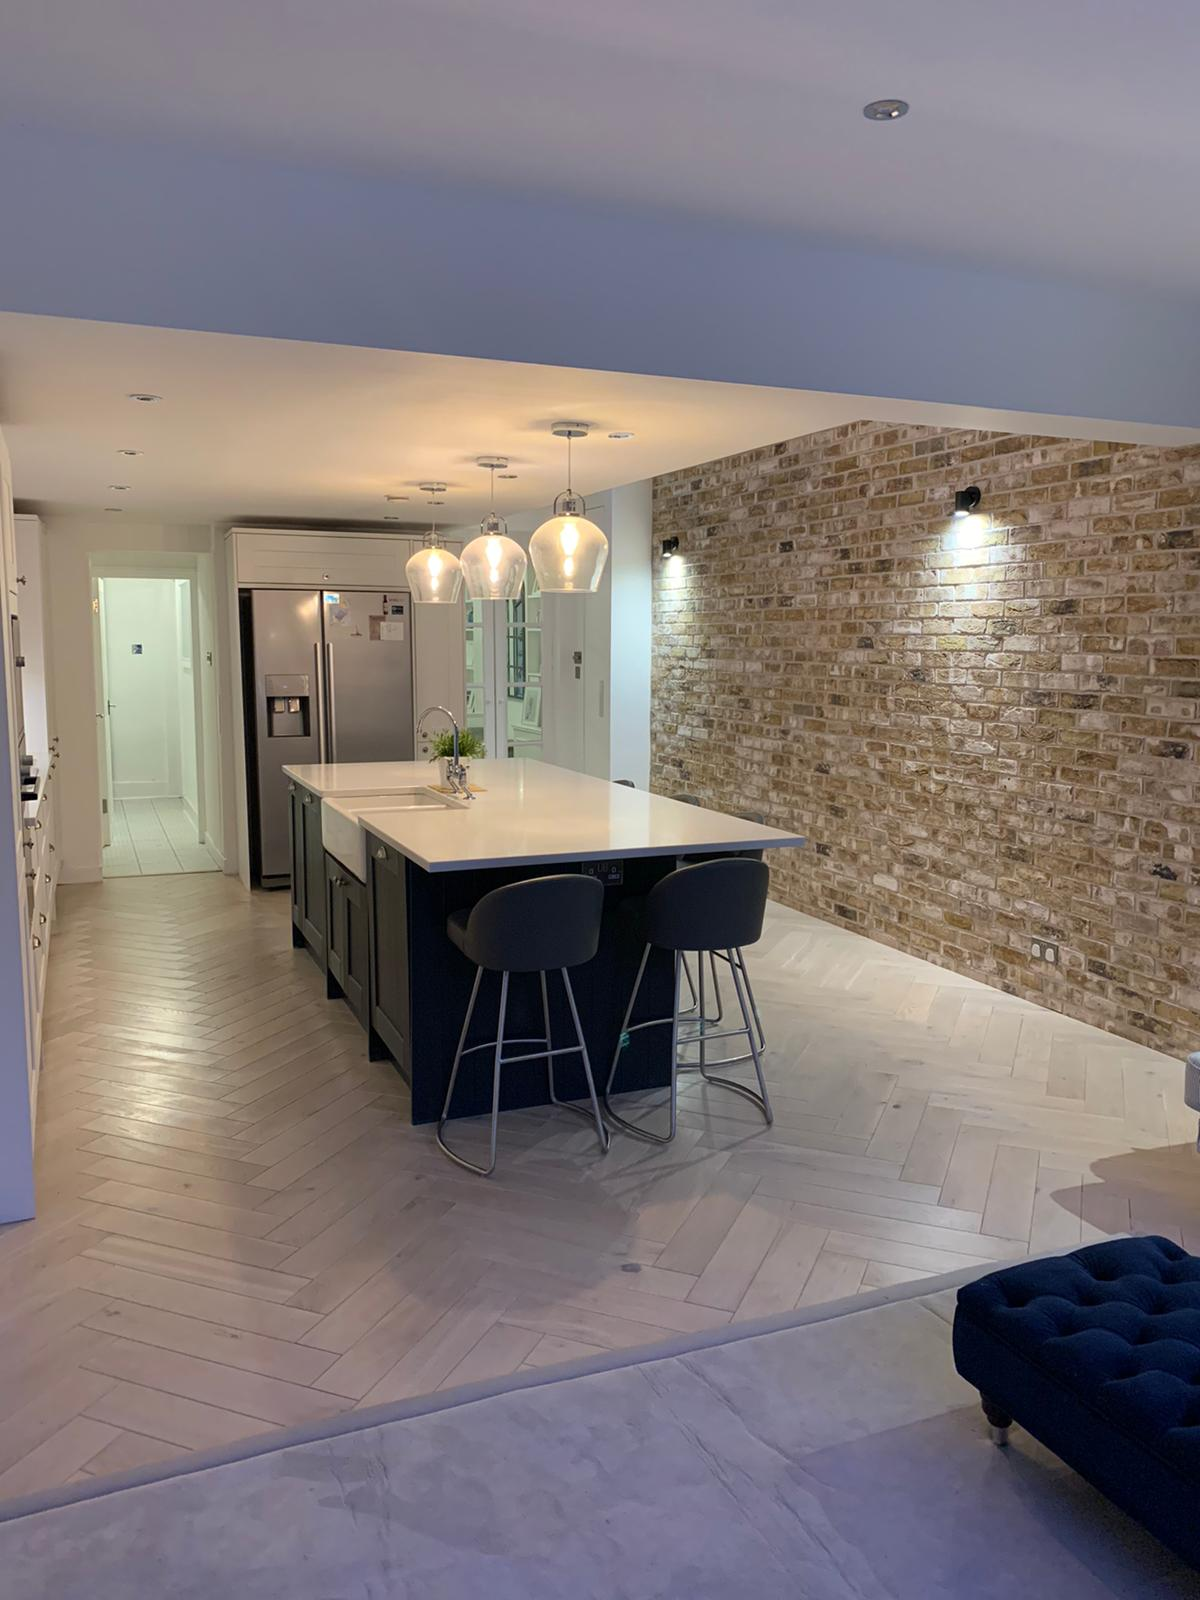 picture of side and rear house extension kitchen with brickwork imitation completed by PB Builder